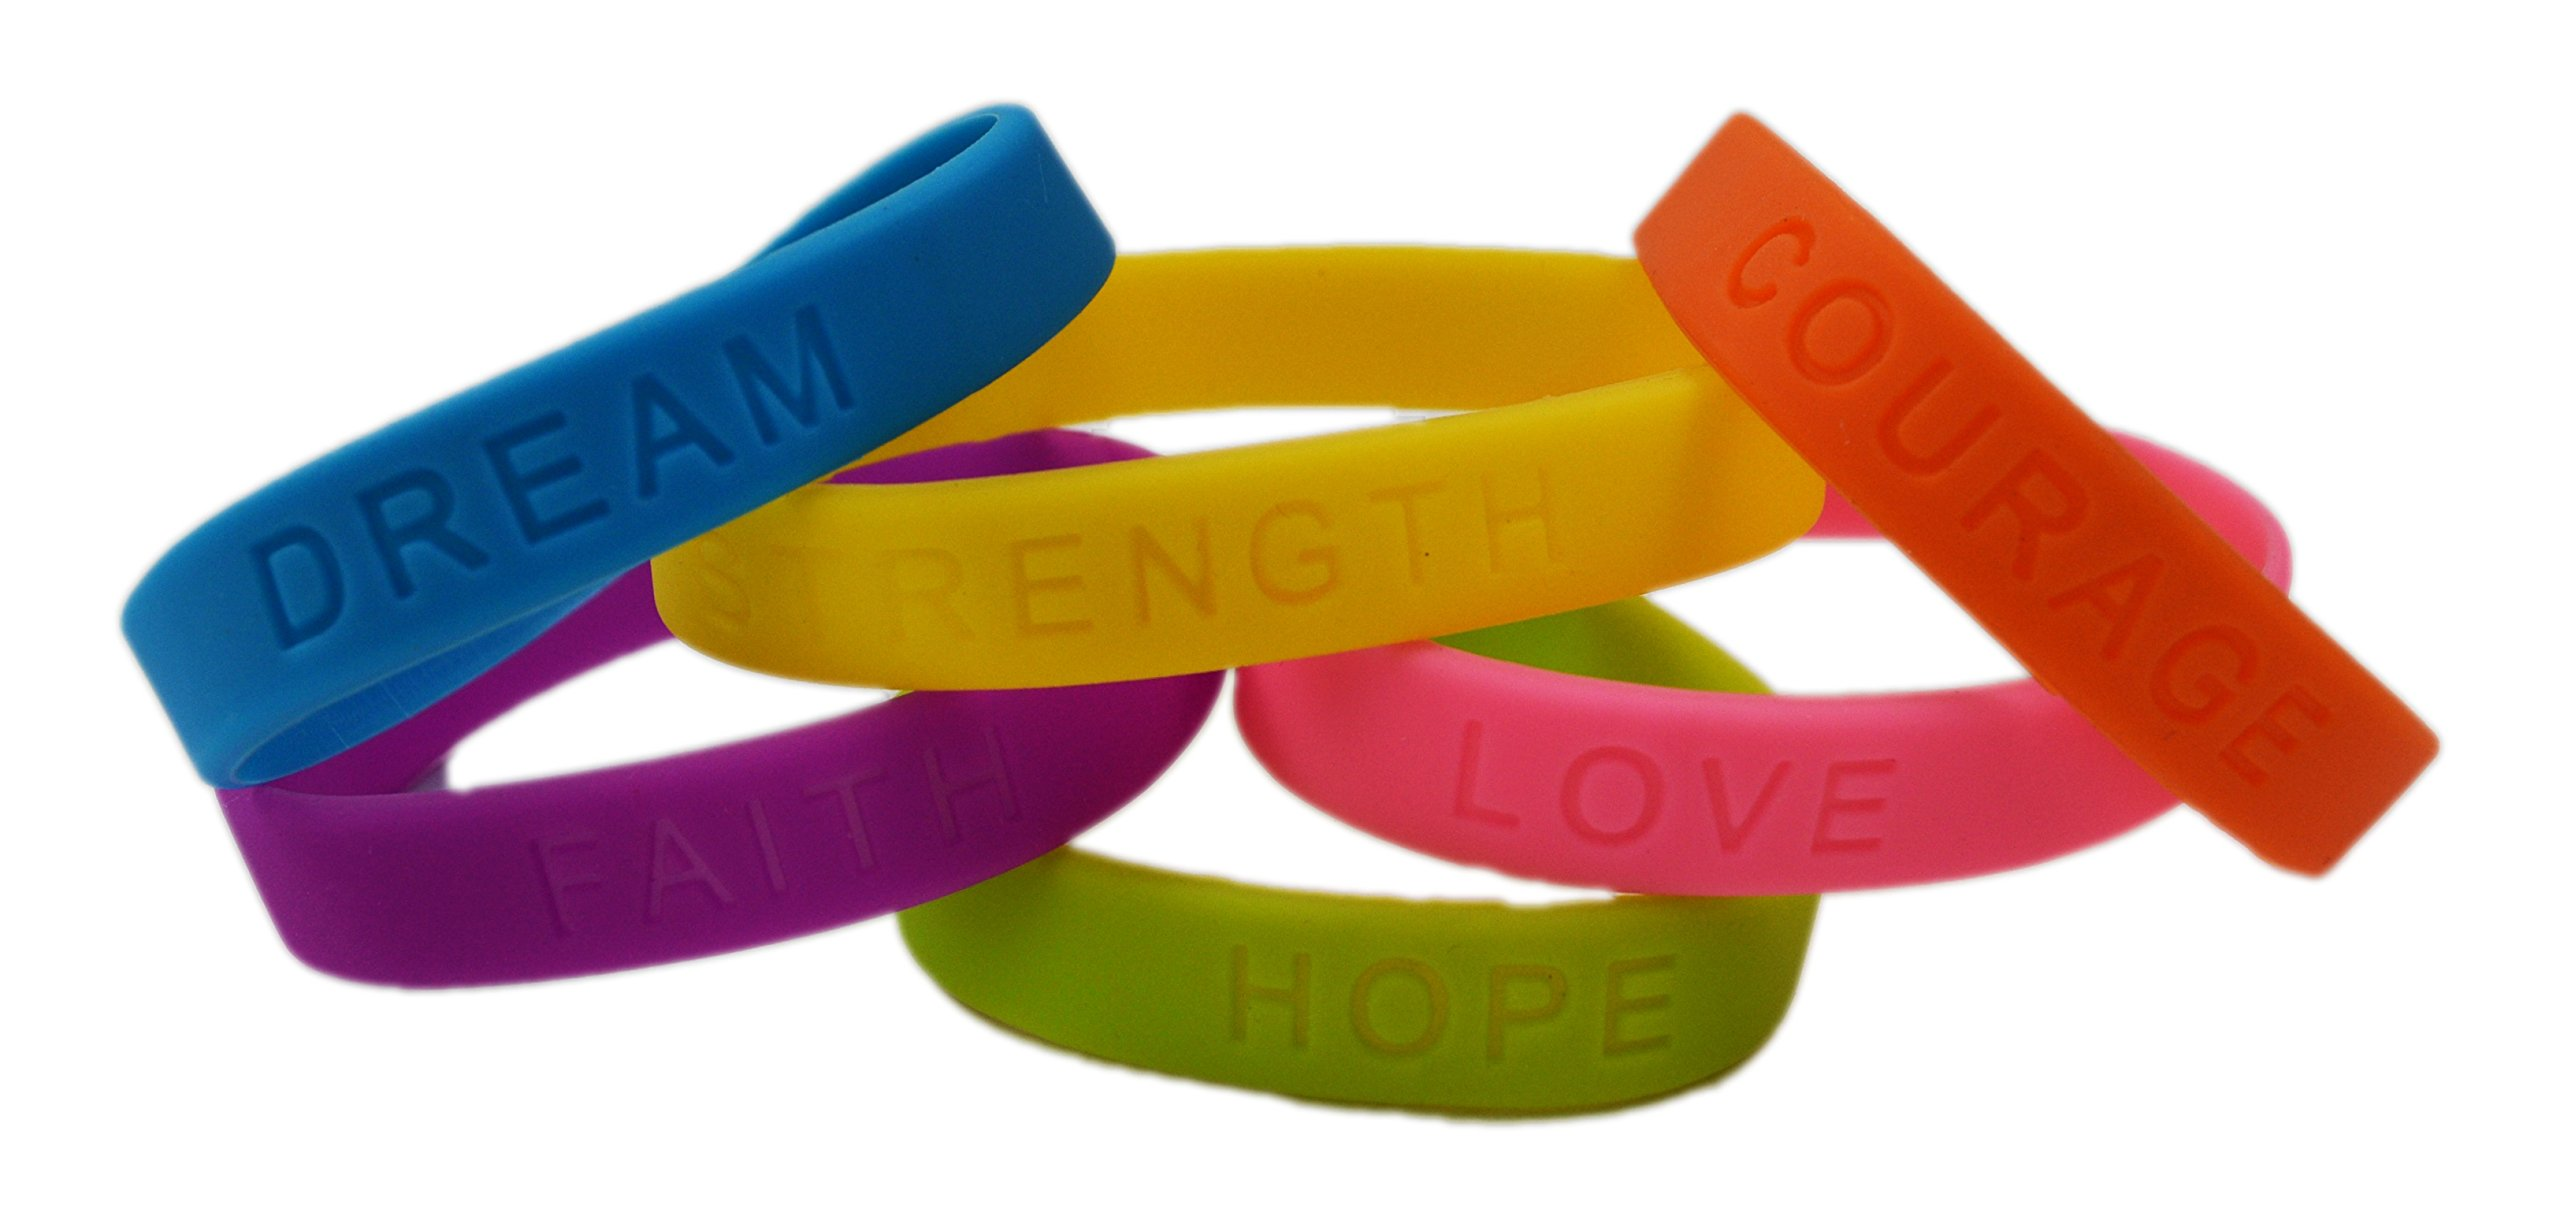 Rubber Bracelets | Dazzling Toys Assorted Colors Inspirational Sayings Bracelets 4 Dozen | Bracelets Have Messages of Dream, Hope, Love, Faith, Courage, and Strength.